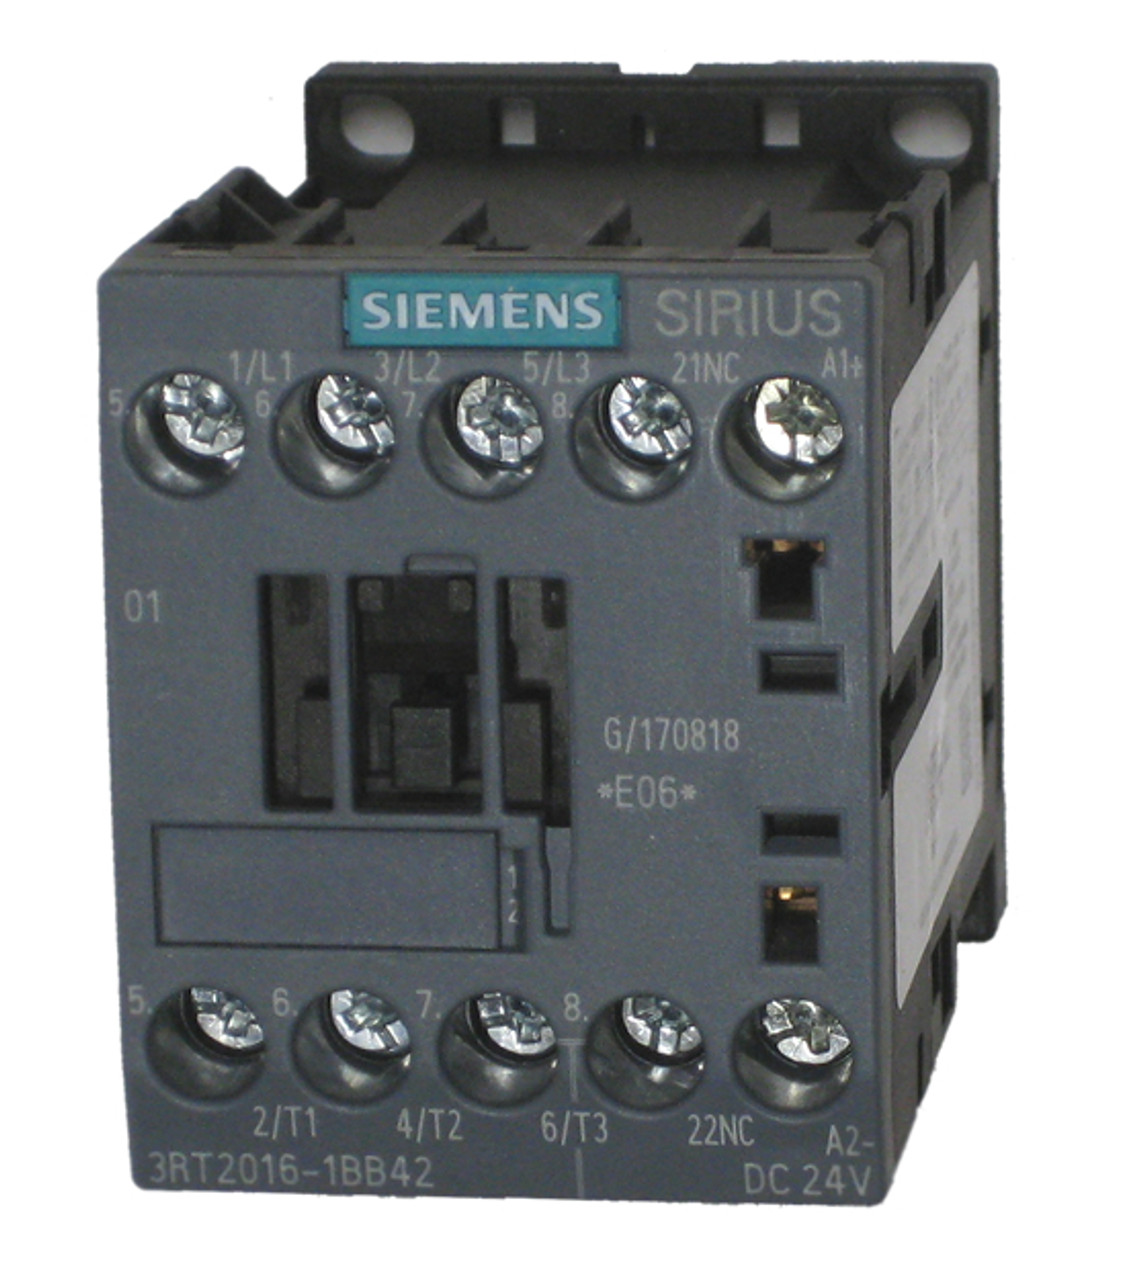 Siemens 3RT2016-1BB42 electrical contactor